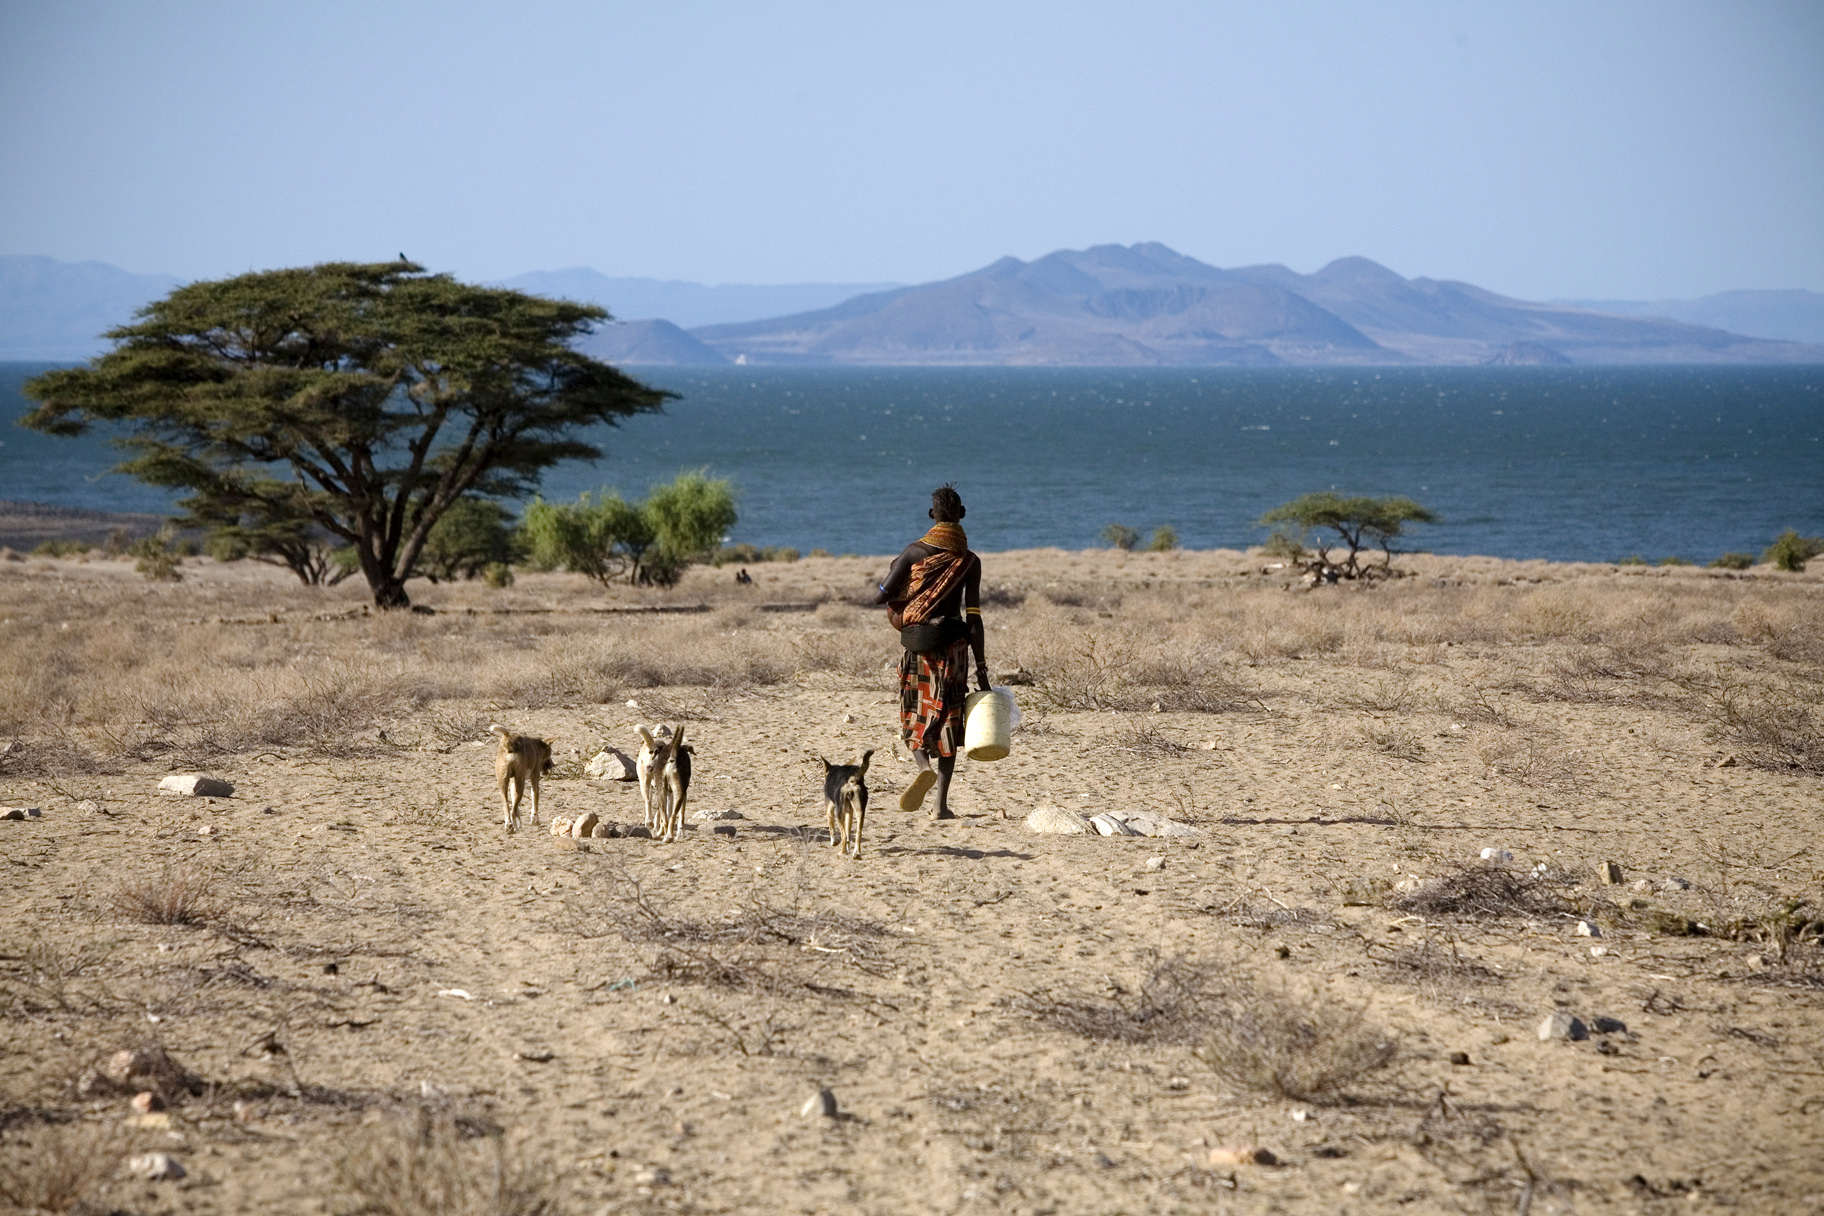 The El Molo are a small fishing community found on the south-eastern side of the lake Turkana, northern Kenya